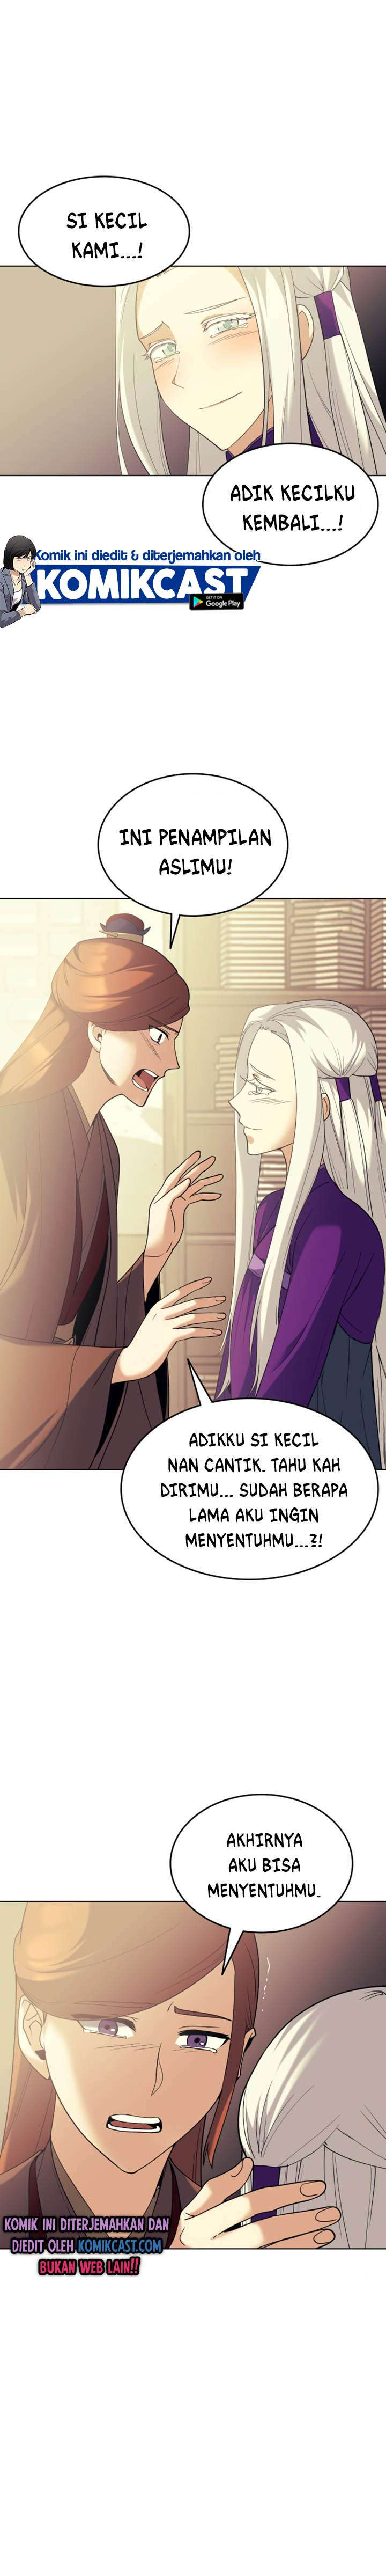 Tale of a Scribe Who Retires to the Countryside Chapter 53 Bahasa Indonesia page 7